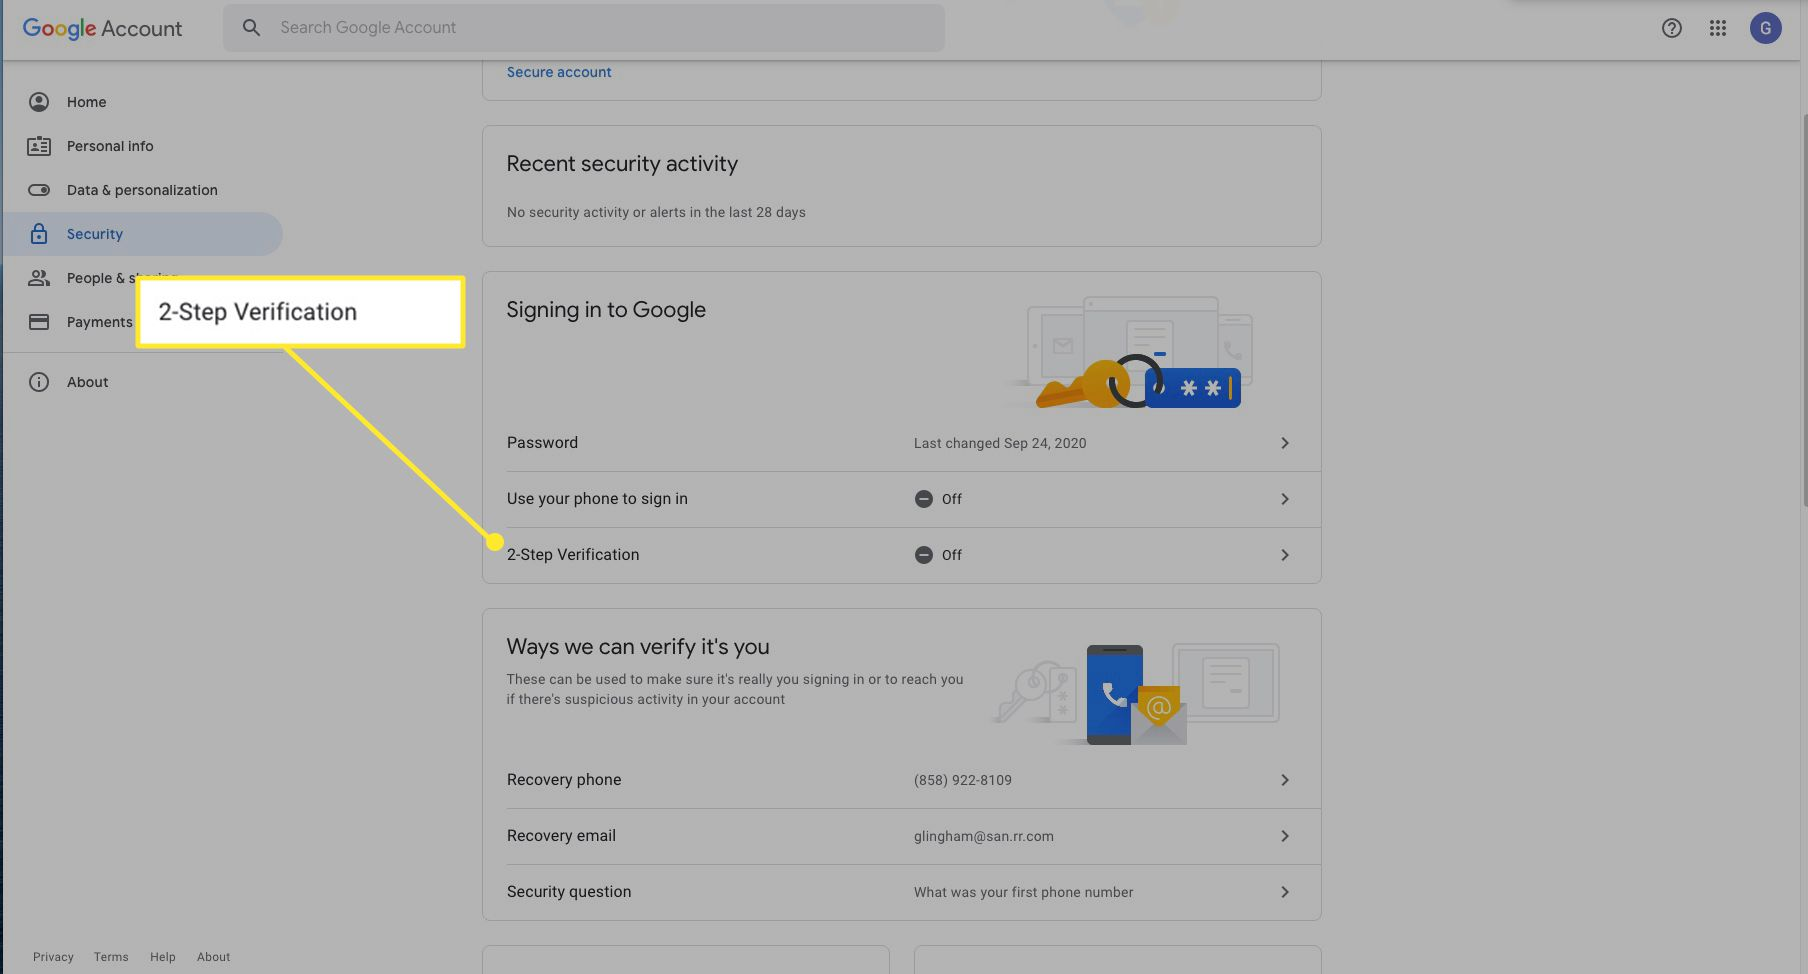 Google account settings with 2-Step Verification highlighted